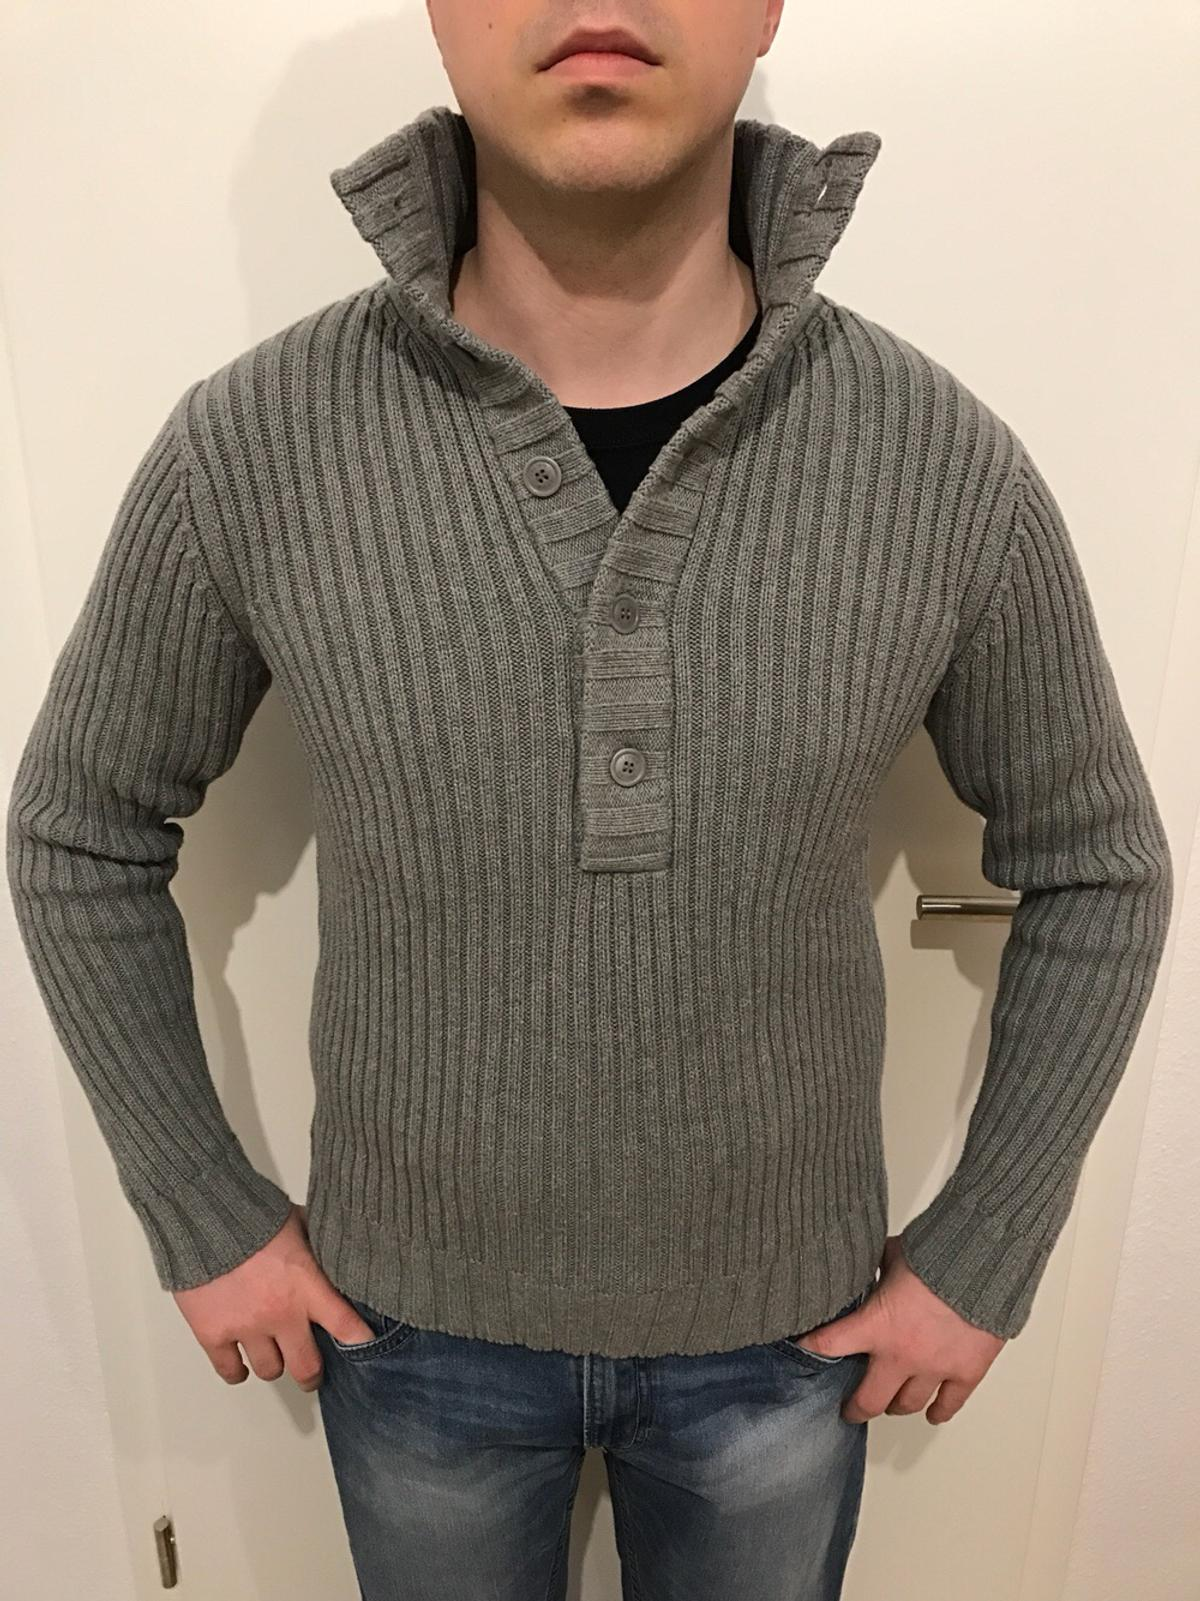 the latest b115d b61d7 Review Herren Pullover